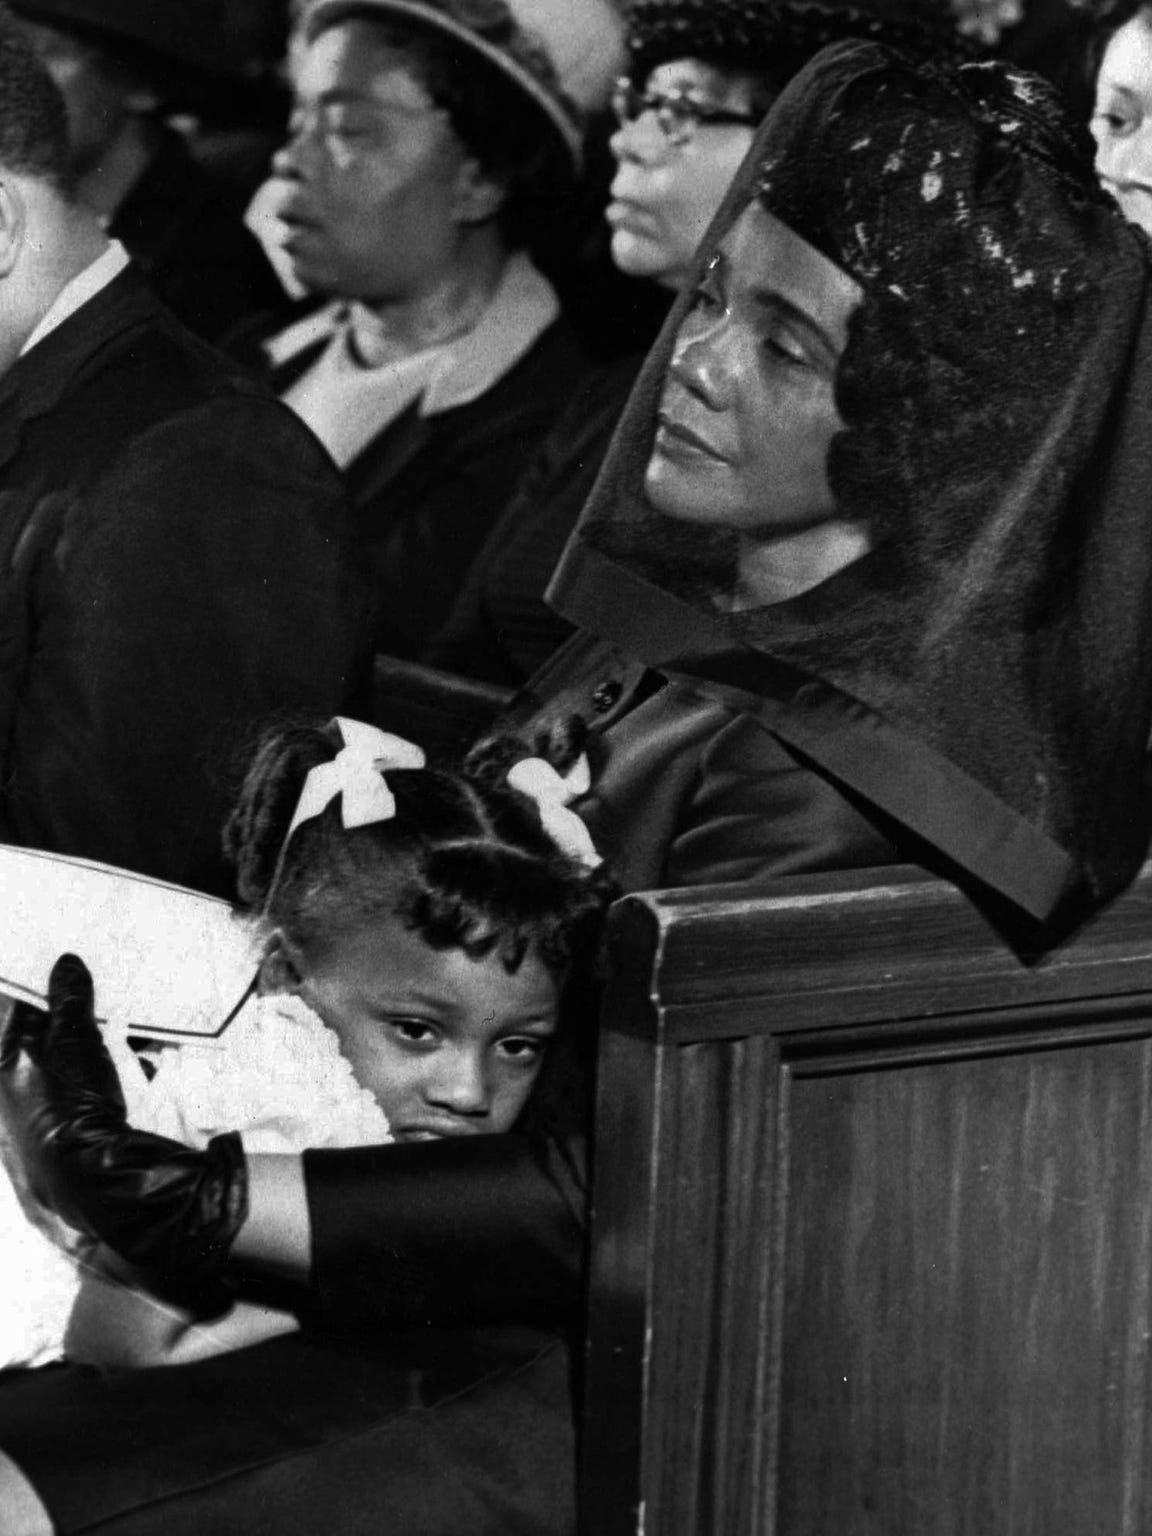 ** FILE ** Coretta Scott King and her daughter, Bernice are shown in this April 9, 1968 file photo, in Atlanta, Ga. attending the funeral of her husband, Martin Luther King, Jr. Coretta Scott King, who turned a life shattered by her husband's assassination into one devoted to enshrining his legacy of human rights and equality, has died, former mayor Andrew Young told NBC Tuesday morning. She was 78.  (AP Photo/Moneta J. Sleet, Jr.)